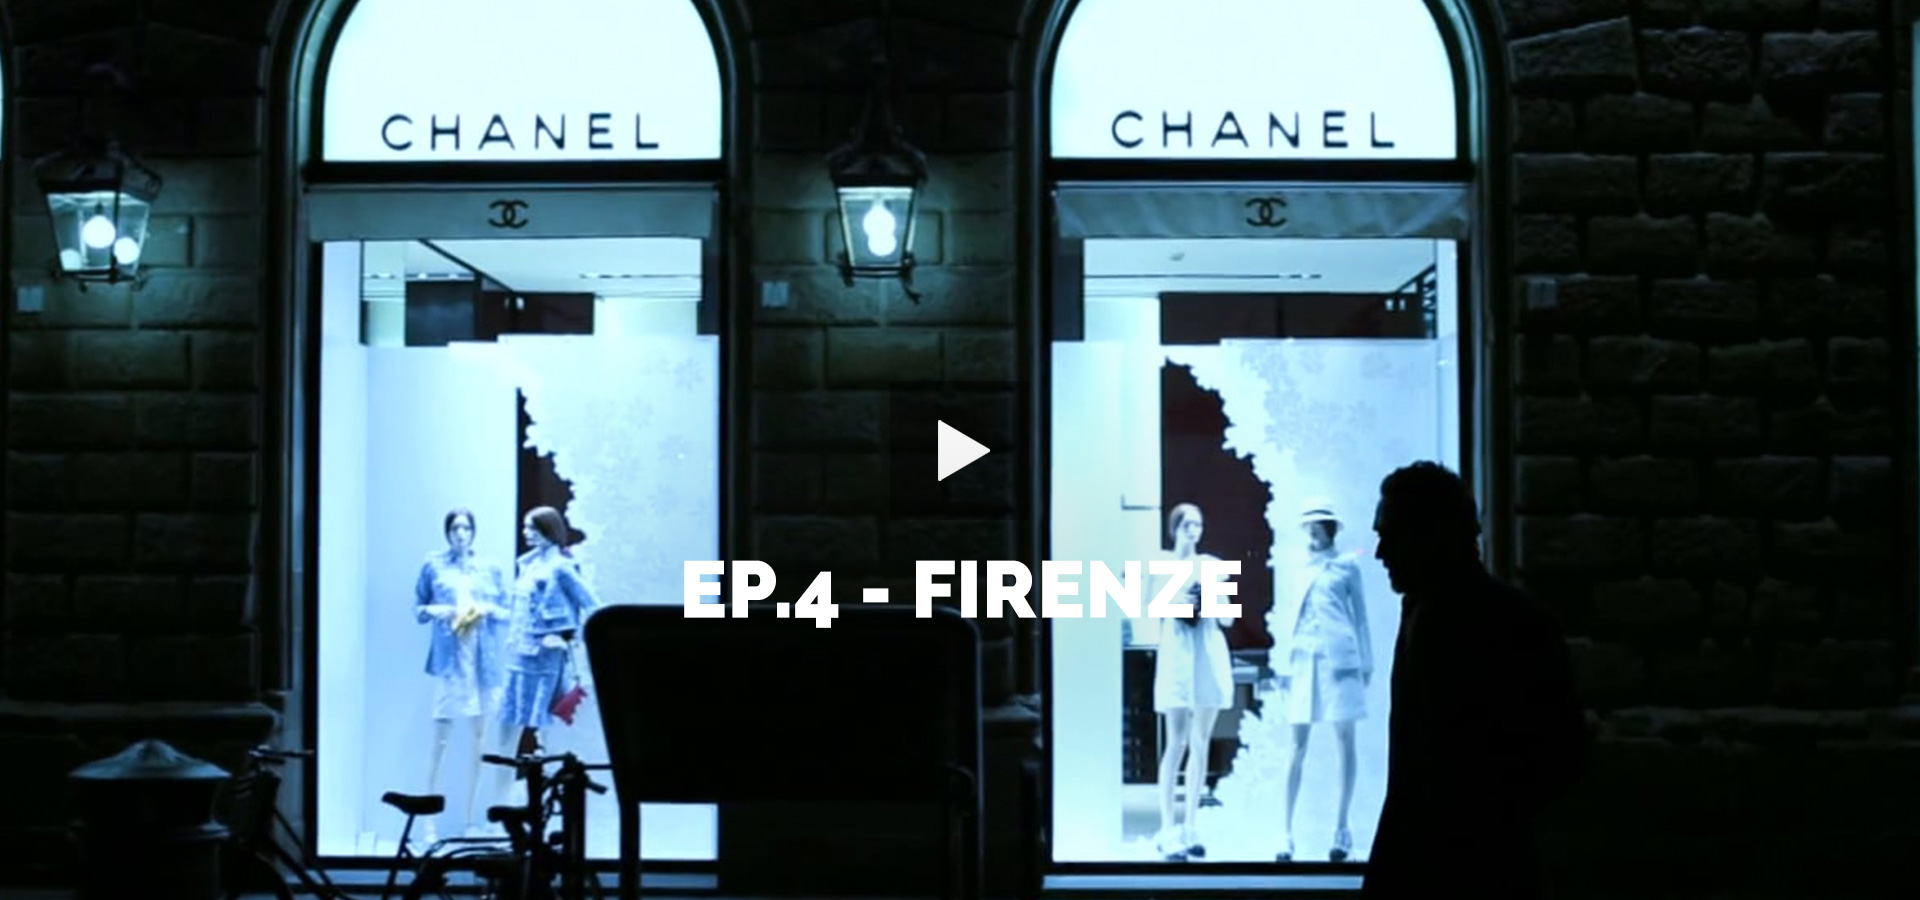 Monkey Talkie per Chanel - Branded Content - Fashion film